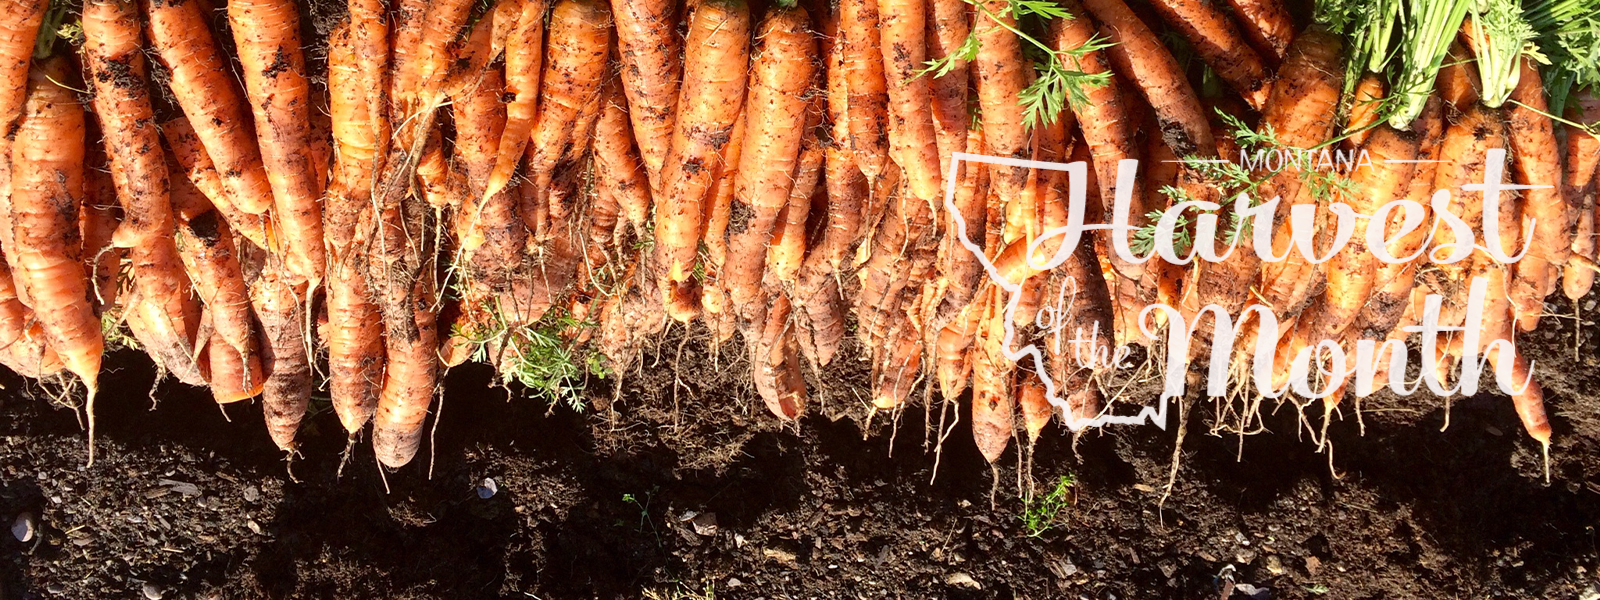 Enjoy carrots as this month's Harvest of the Month!